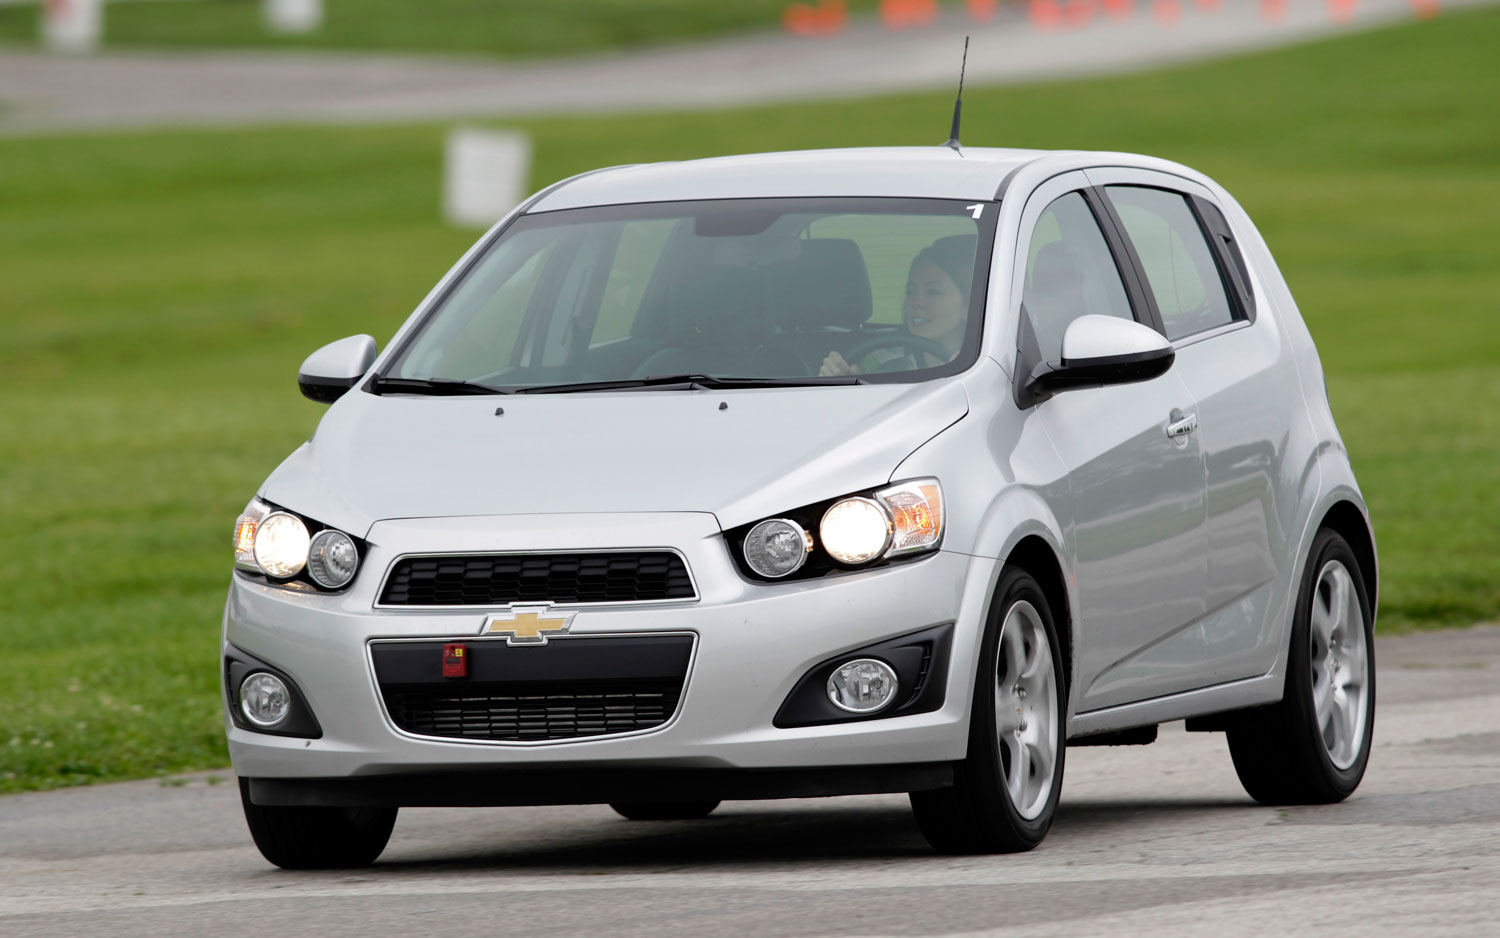 2012 Chevrolet Sonic Front Left View Driving3